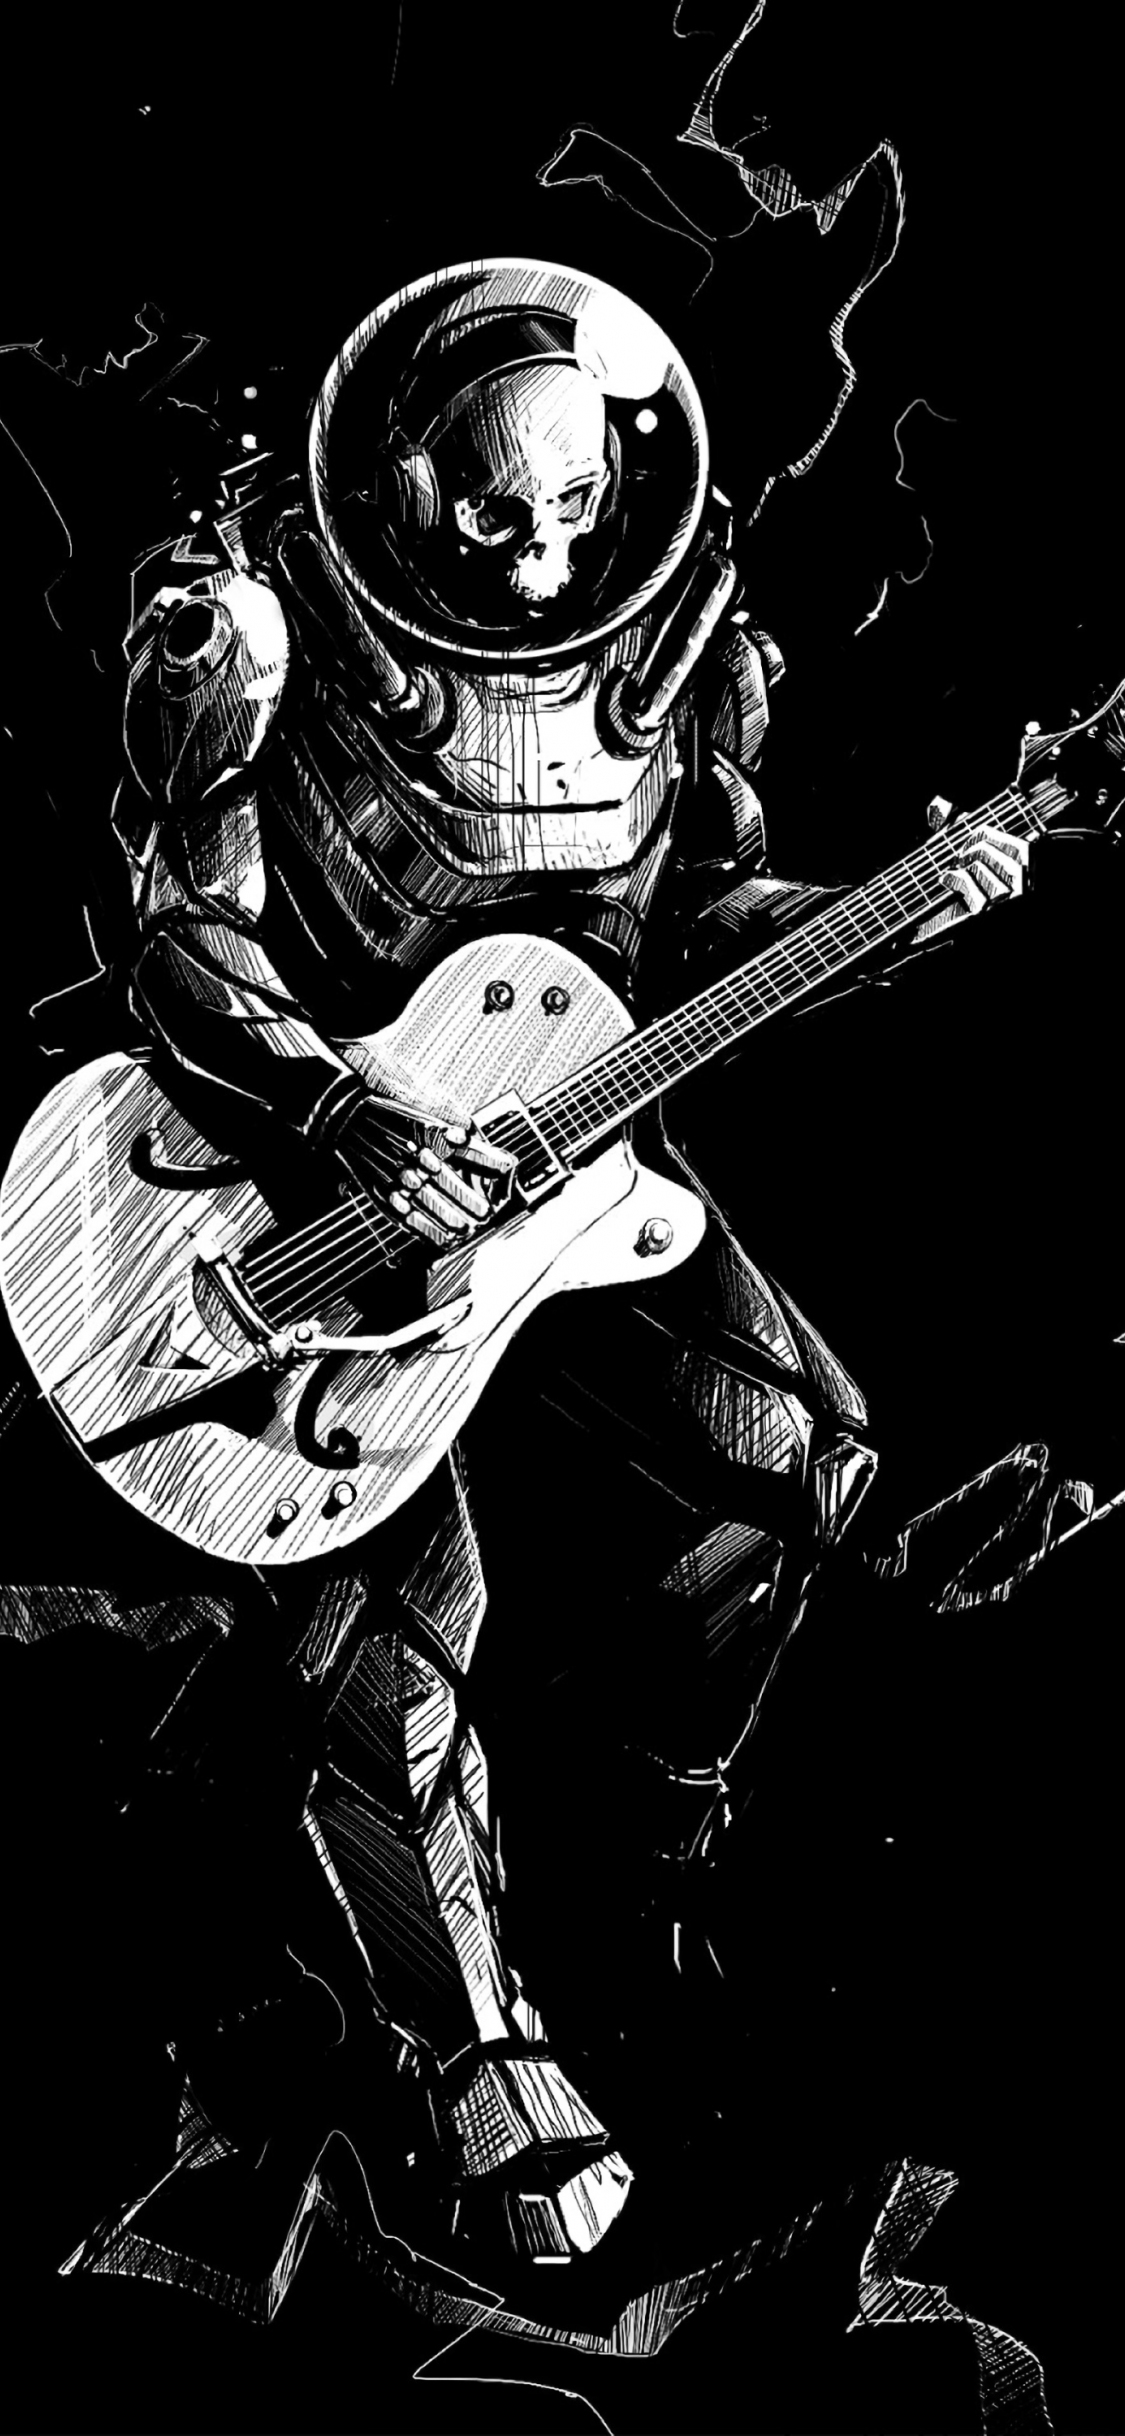 Download 1125x2436 Wallpaper Art Skeleton Guitar Play Music Bw Iphone X 1125x2436 Hd Image Background 17880